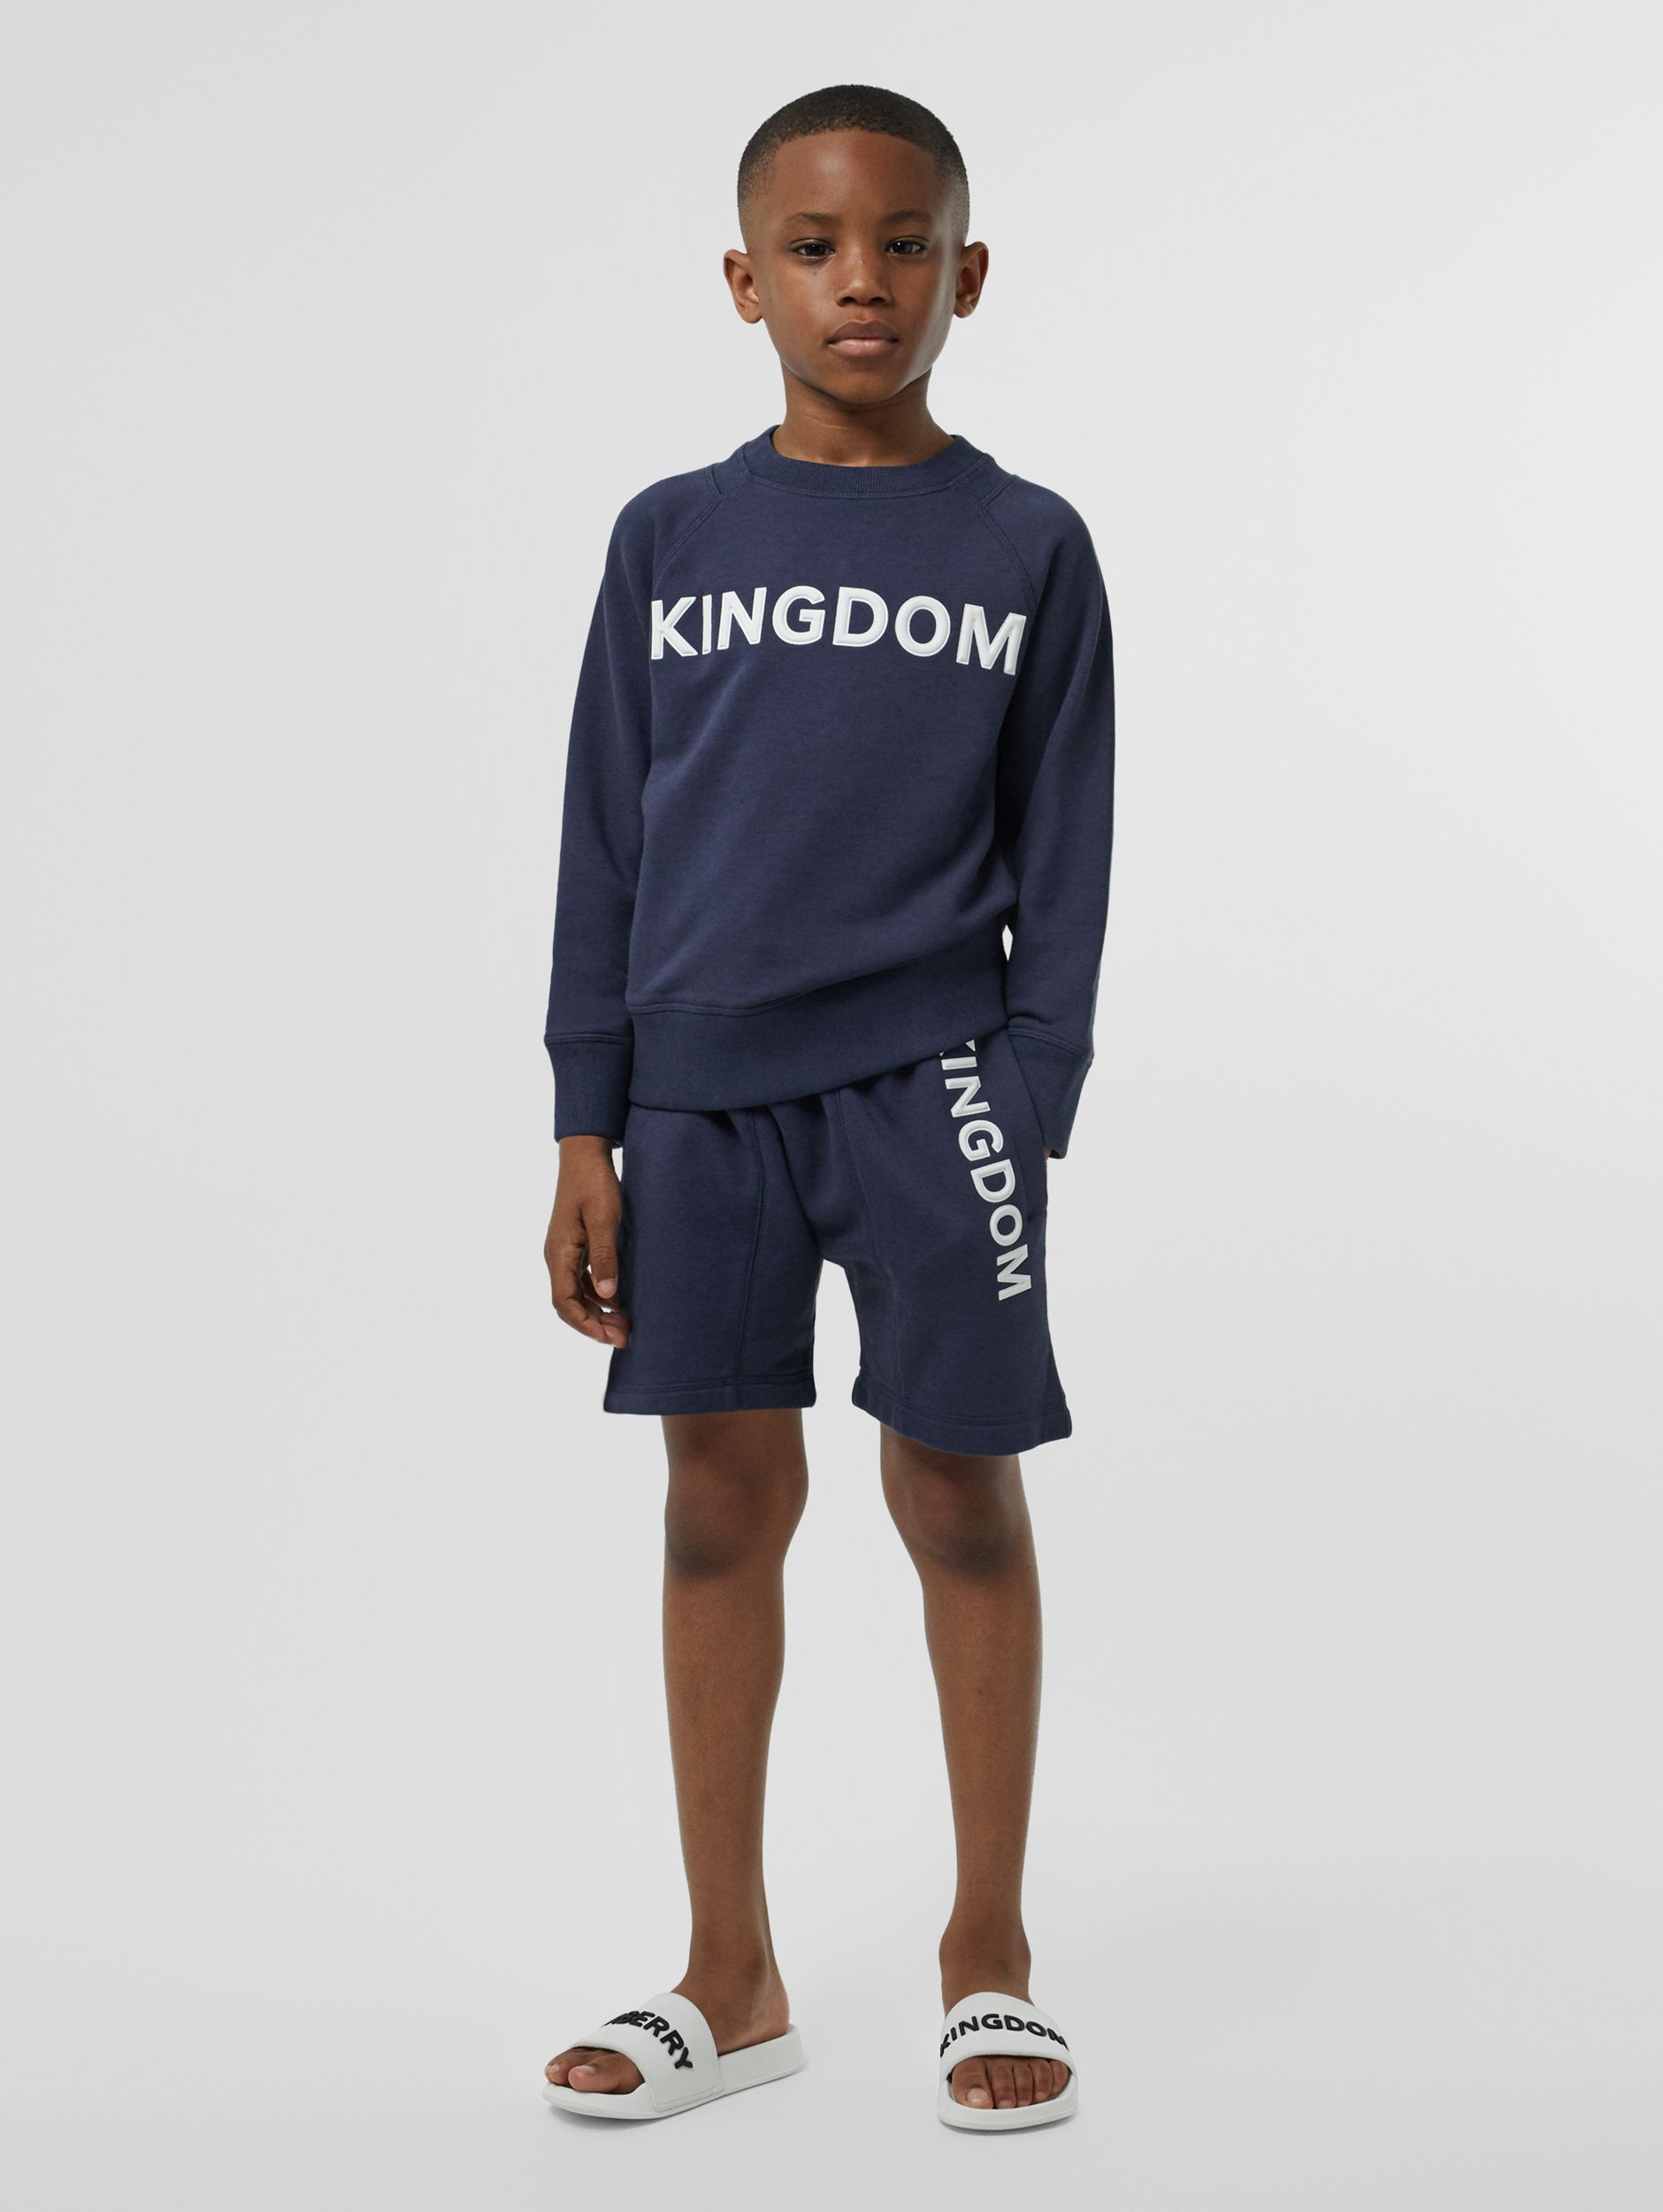 Kingdom Motif Cotton Drawcord Shorts in Slate Blue Melange | Burberry United States - 3